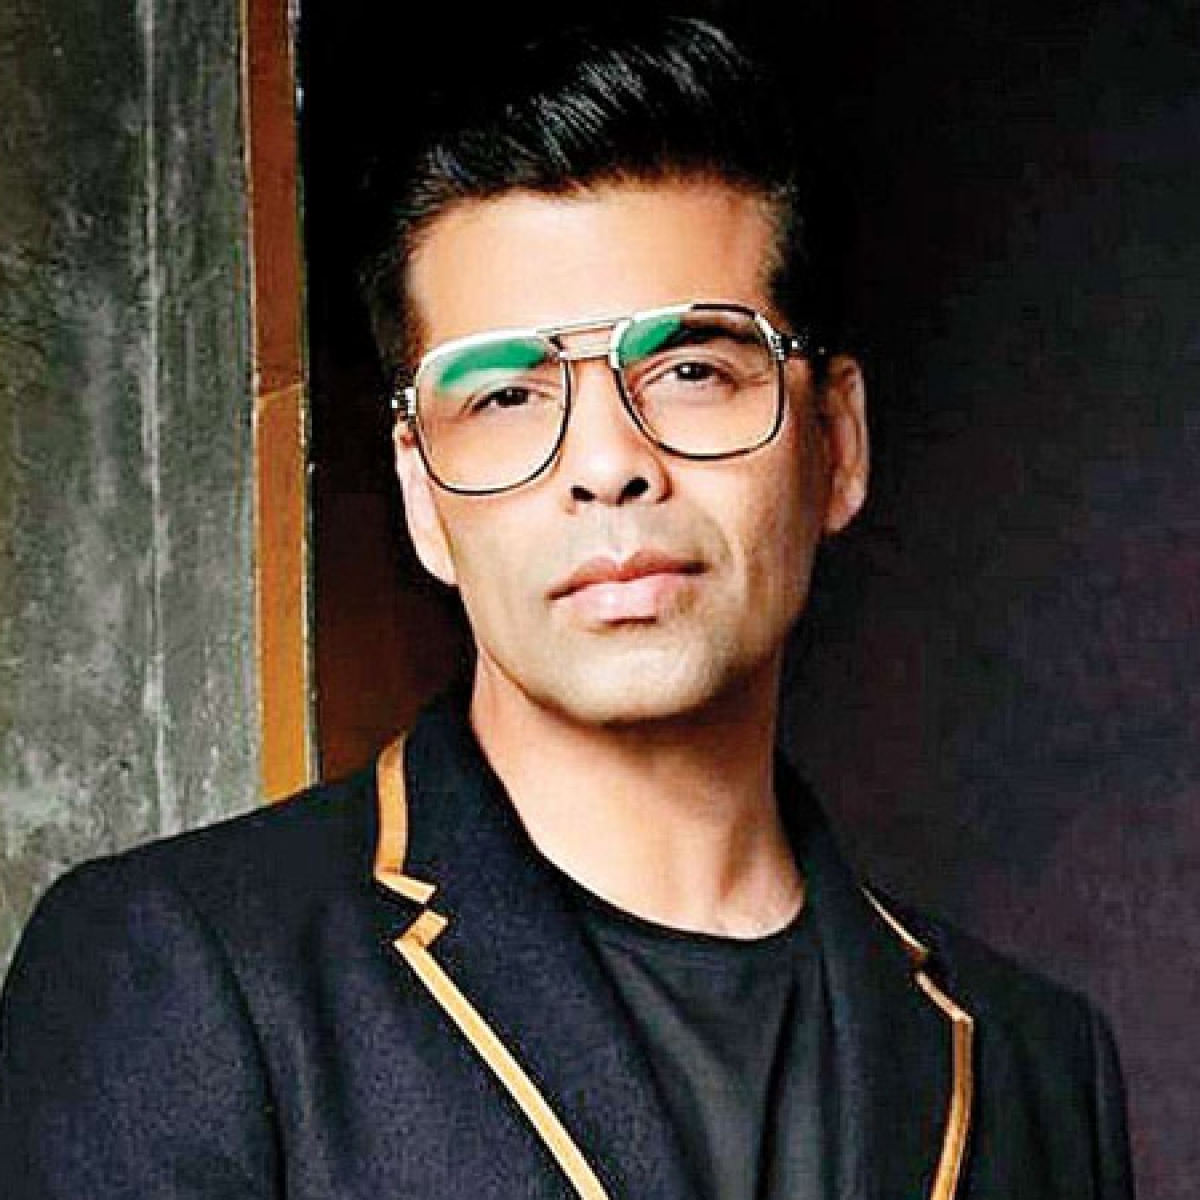 Next time there are baseless allegations, will deal legally: Karan Johar on alleged 'drug party'